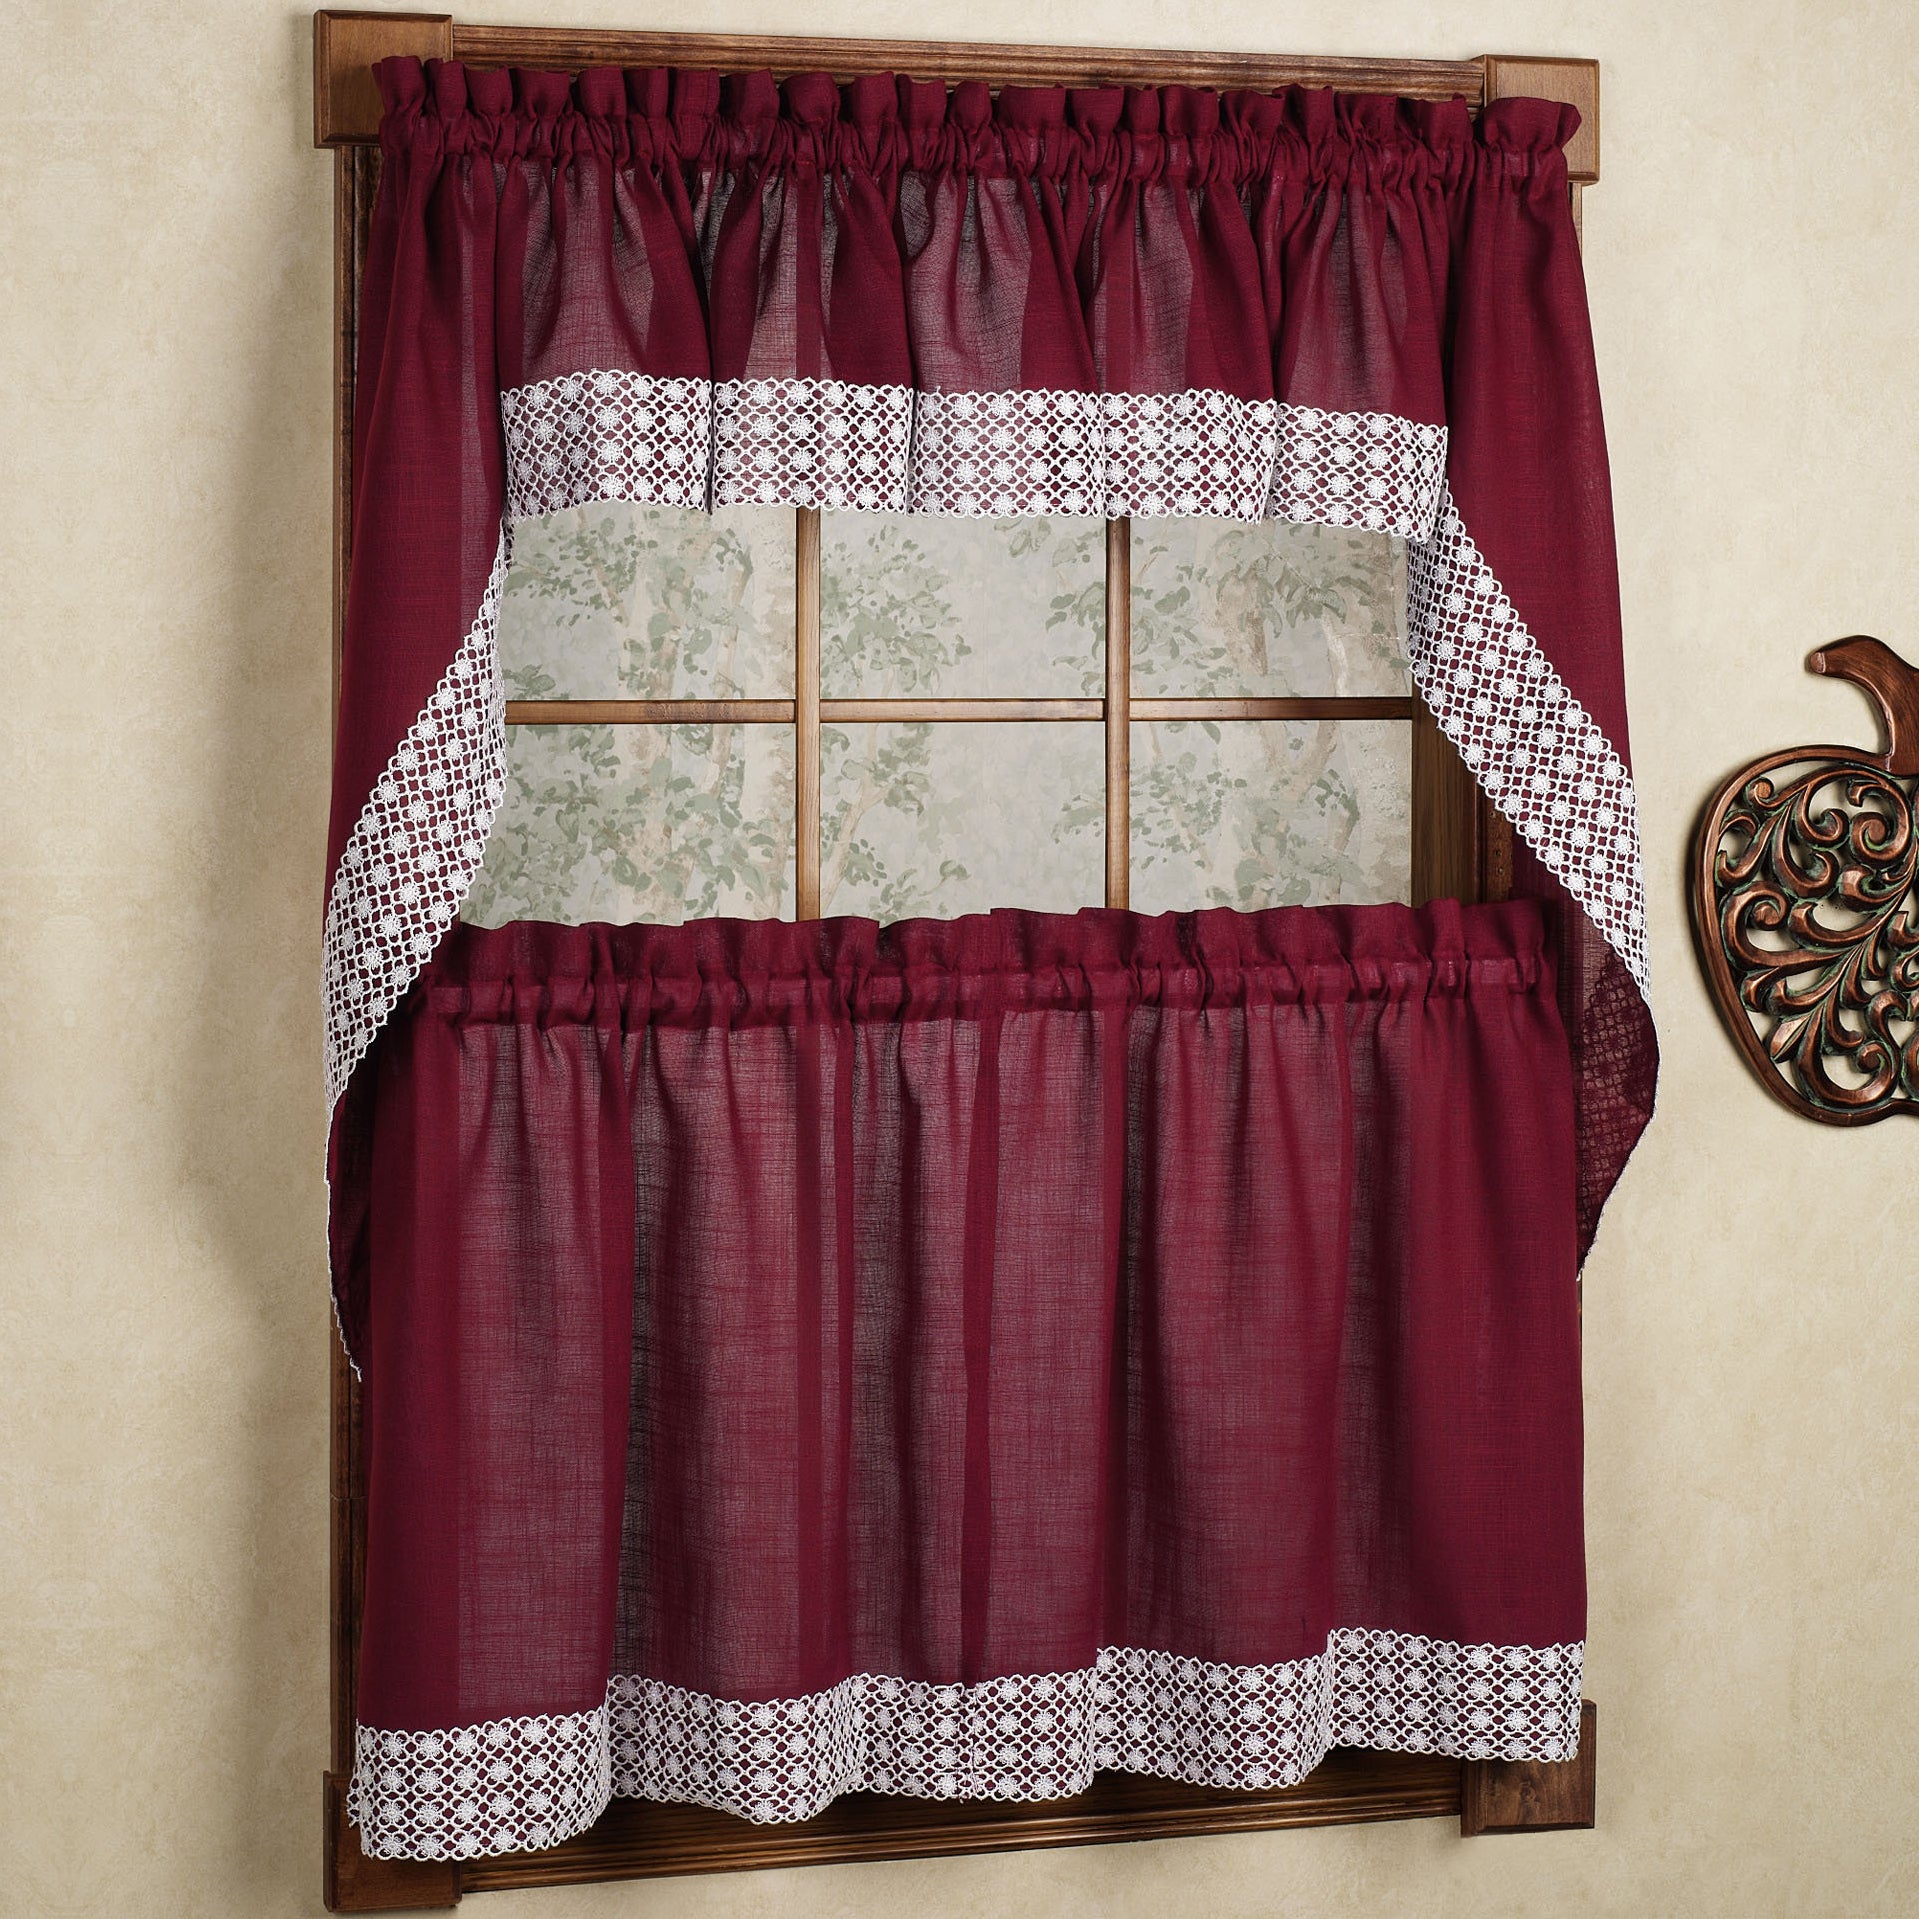 Burgundy Country Style Curtain Parts With White Daisy Lace Accent Tier, Swag And Valances With Kitchen Burgundy/white Curtain Sets (View 12 of 20)